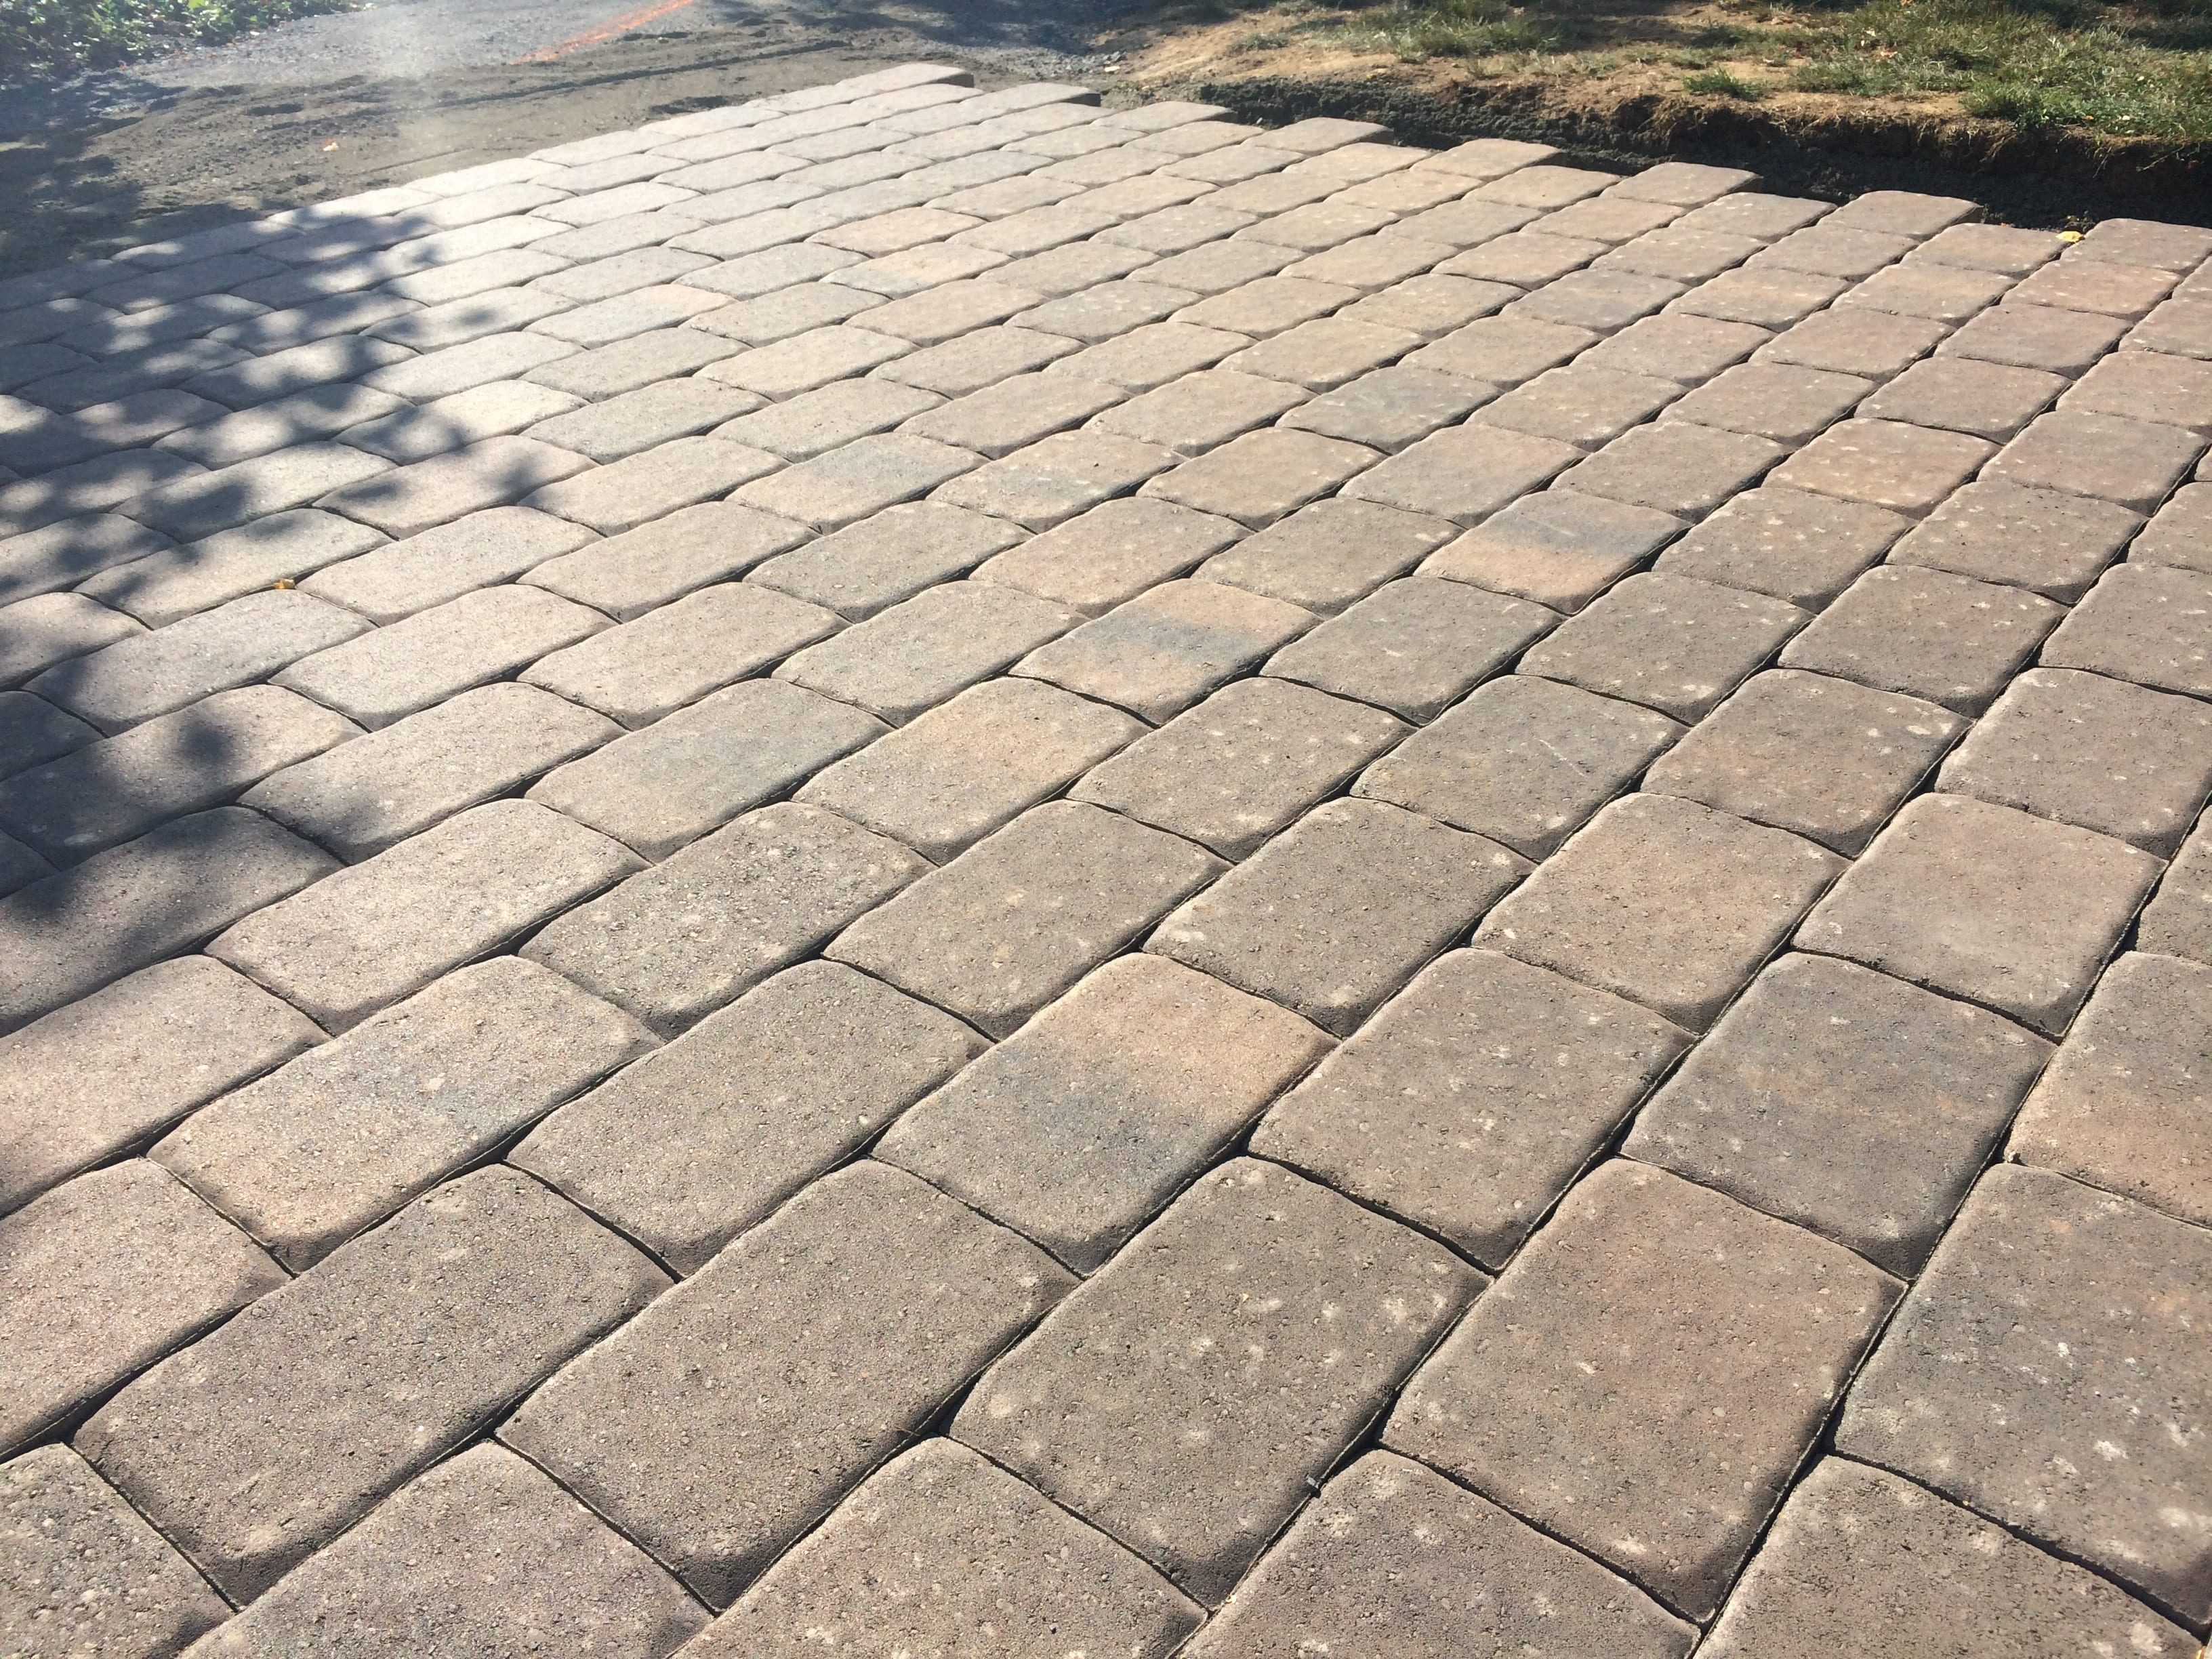 Pavers Give Stylish Flair To This Small Patio